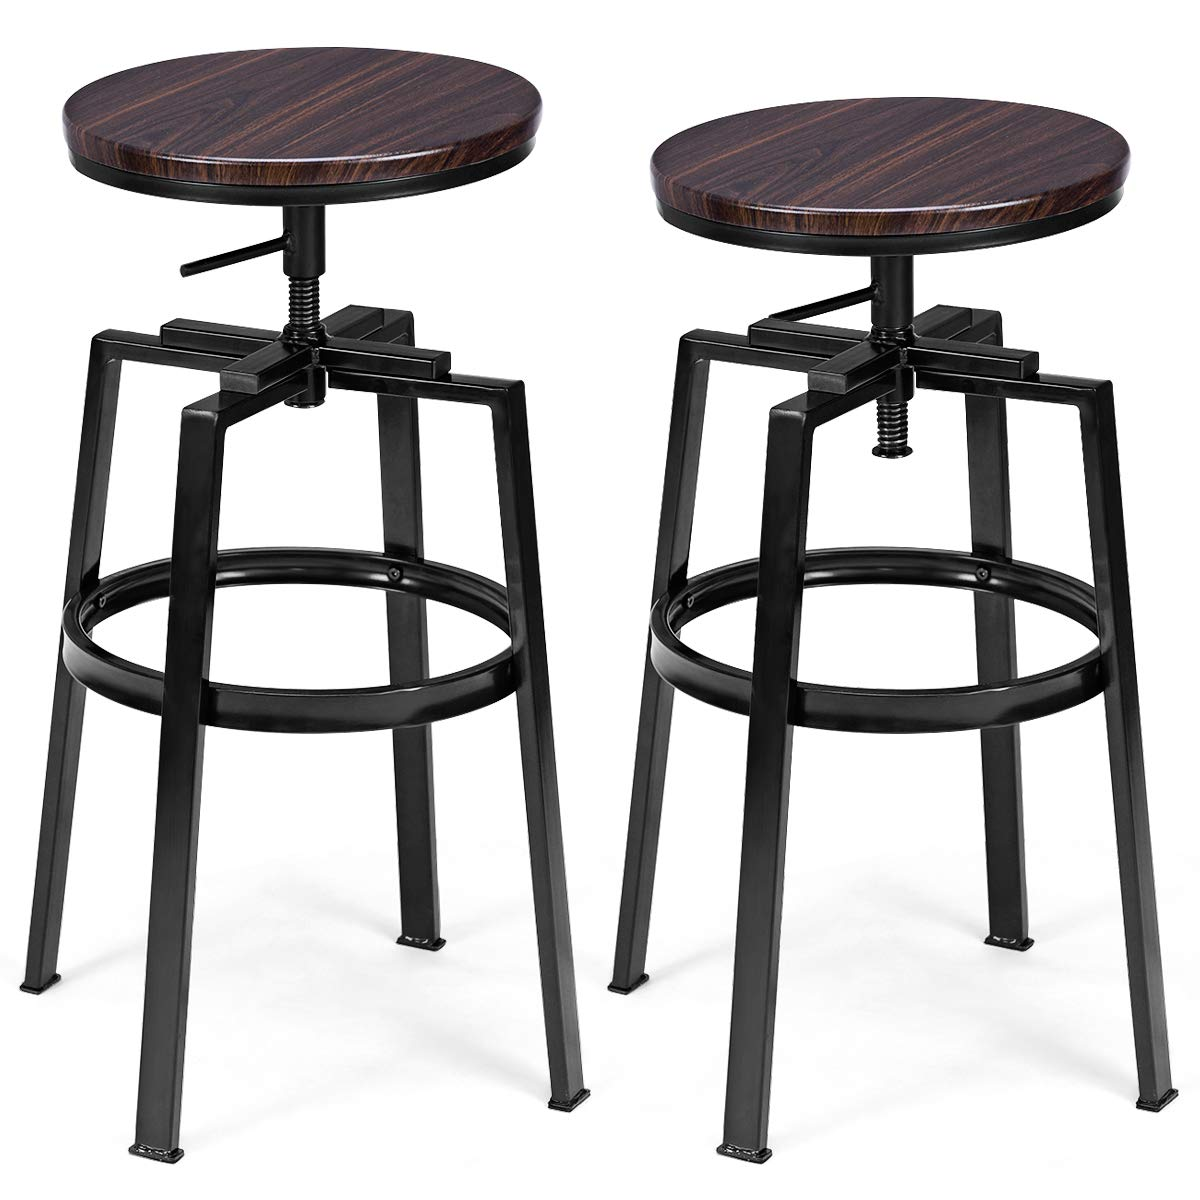 COSTWAY Counter Height Bar Stools, Set of 2, Swivel Adjustable, Round Top Pub Bistro Kitchen Dining Side Chair Mental Barstools with Footrest by COSTWAY